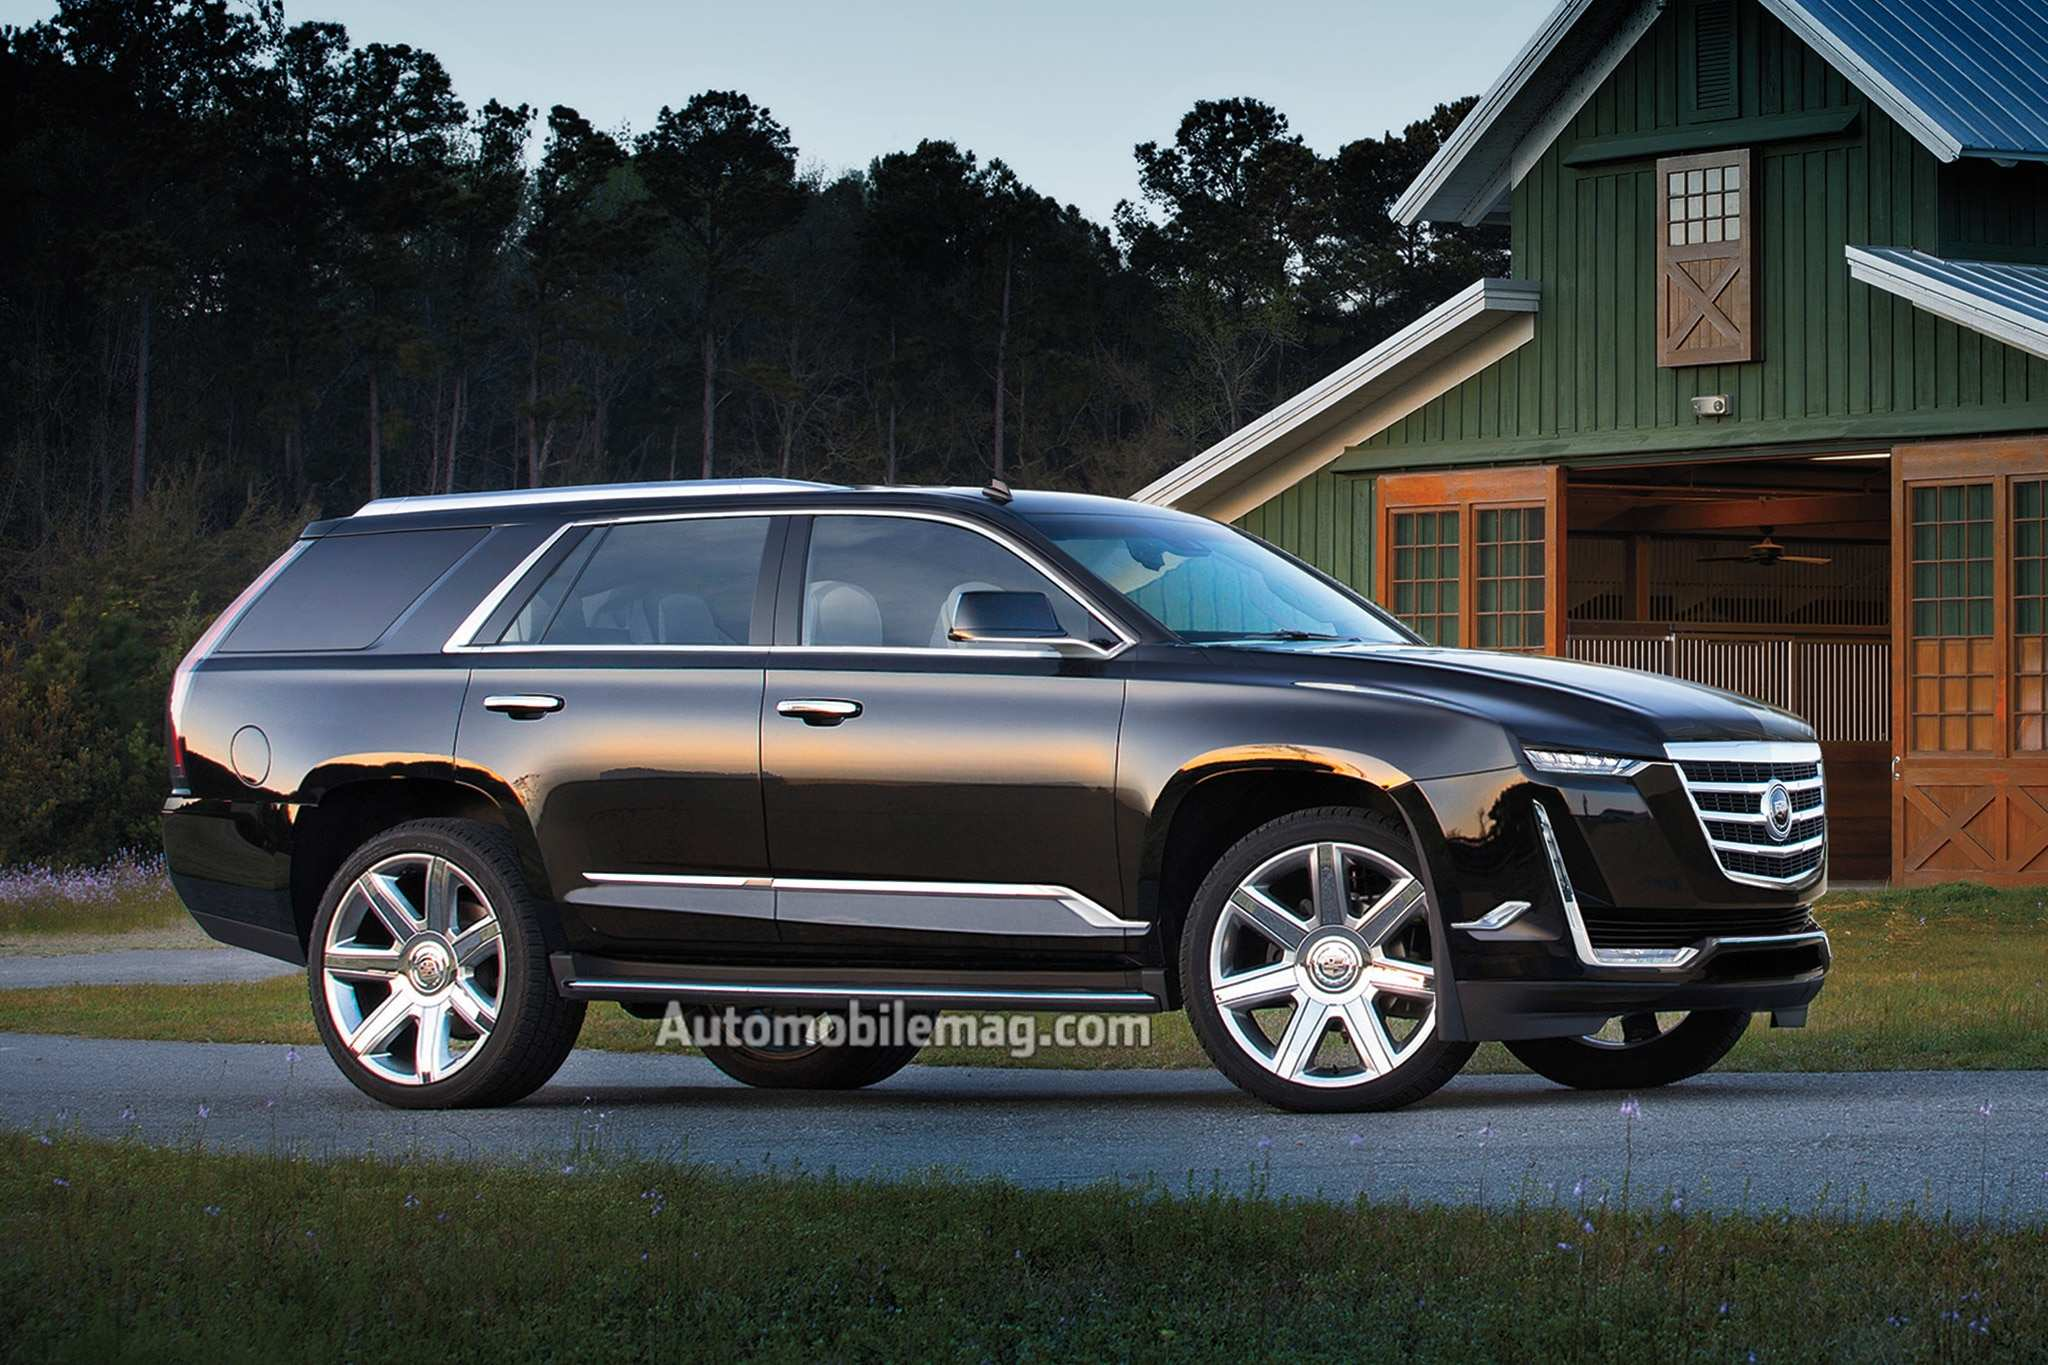 98 The Best 2020 Chevrolet Suburban New Review